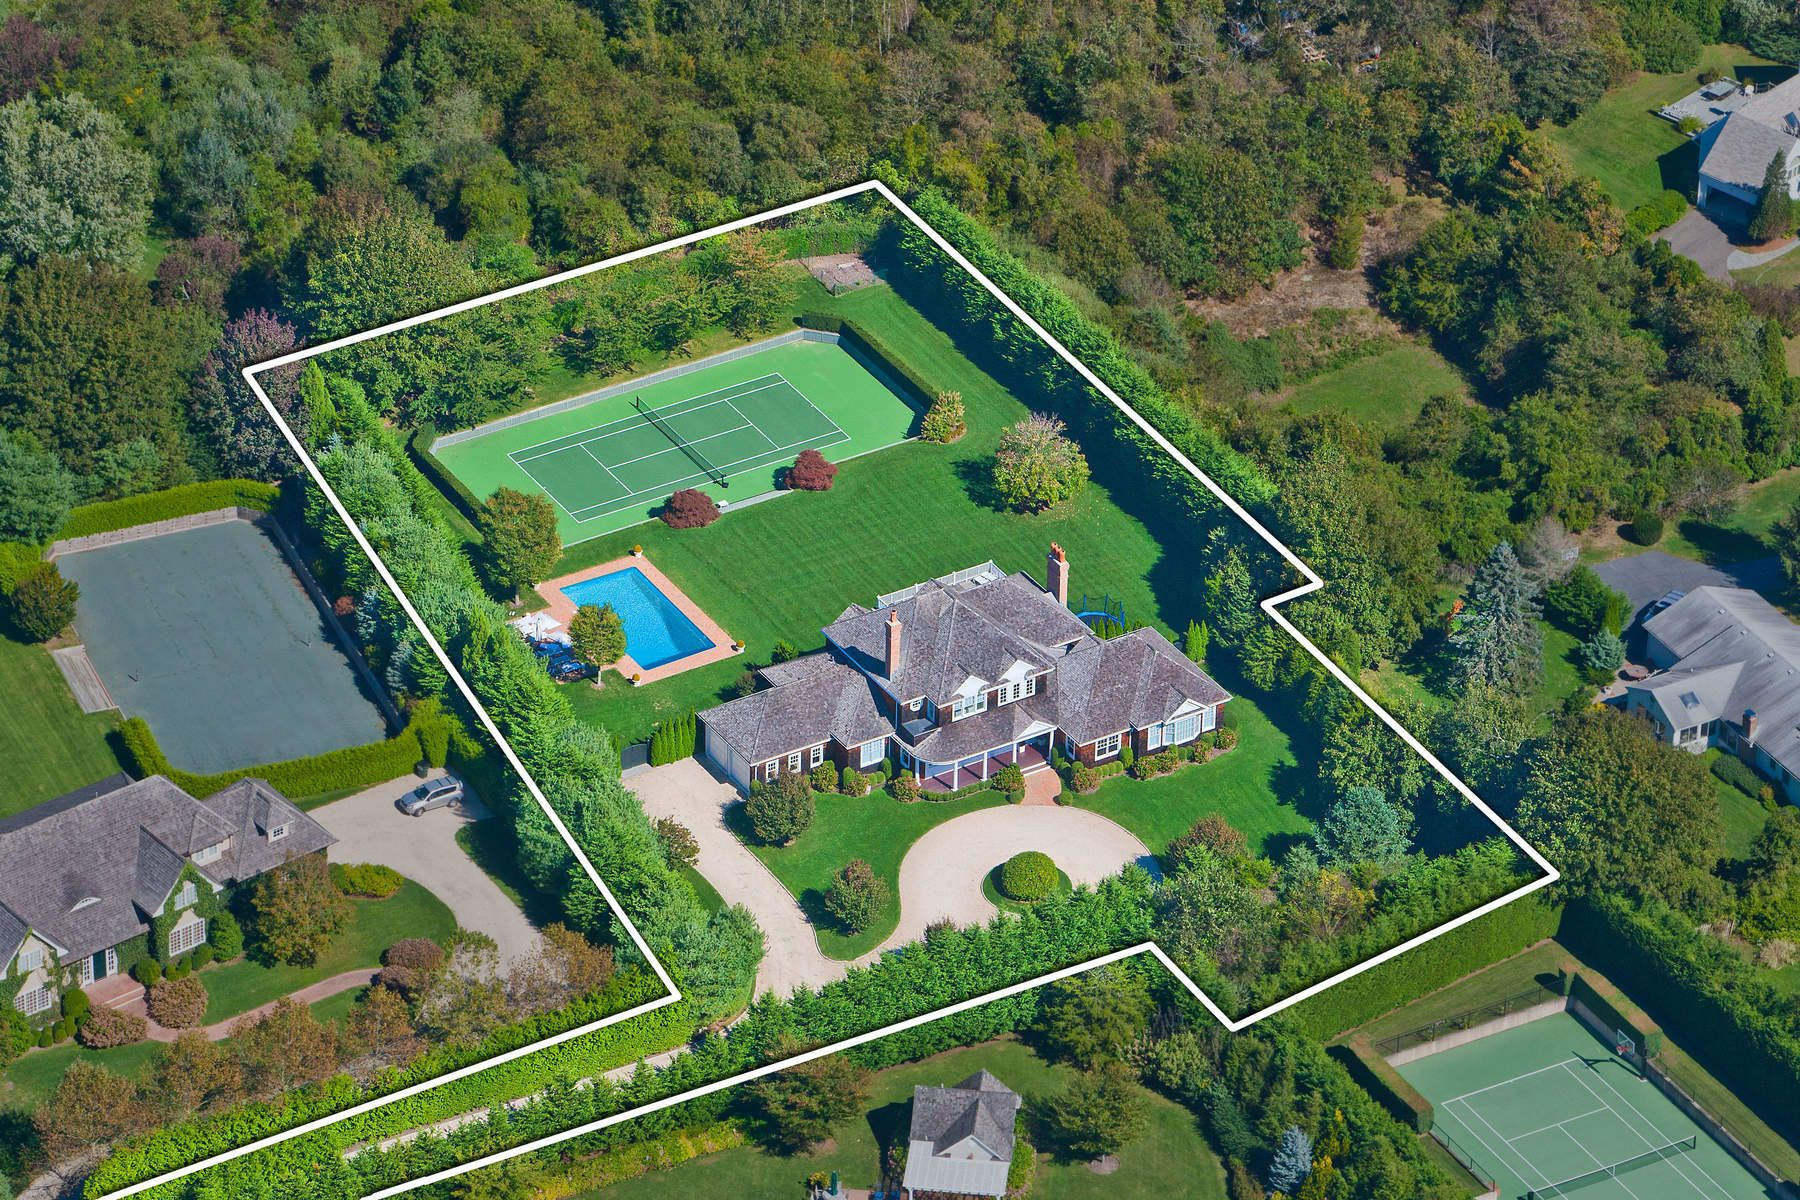 Casa Unifamiliar por un Venta en Noteworthy Gated Estate in Southampton 5 Cameron Way, Southampton, Nueva York, 11968 Estados Unidos